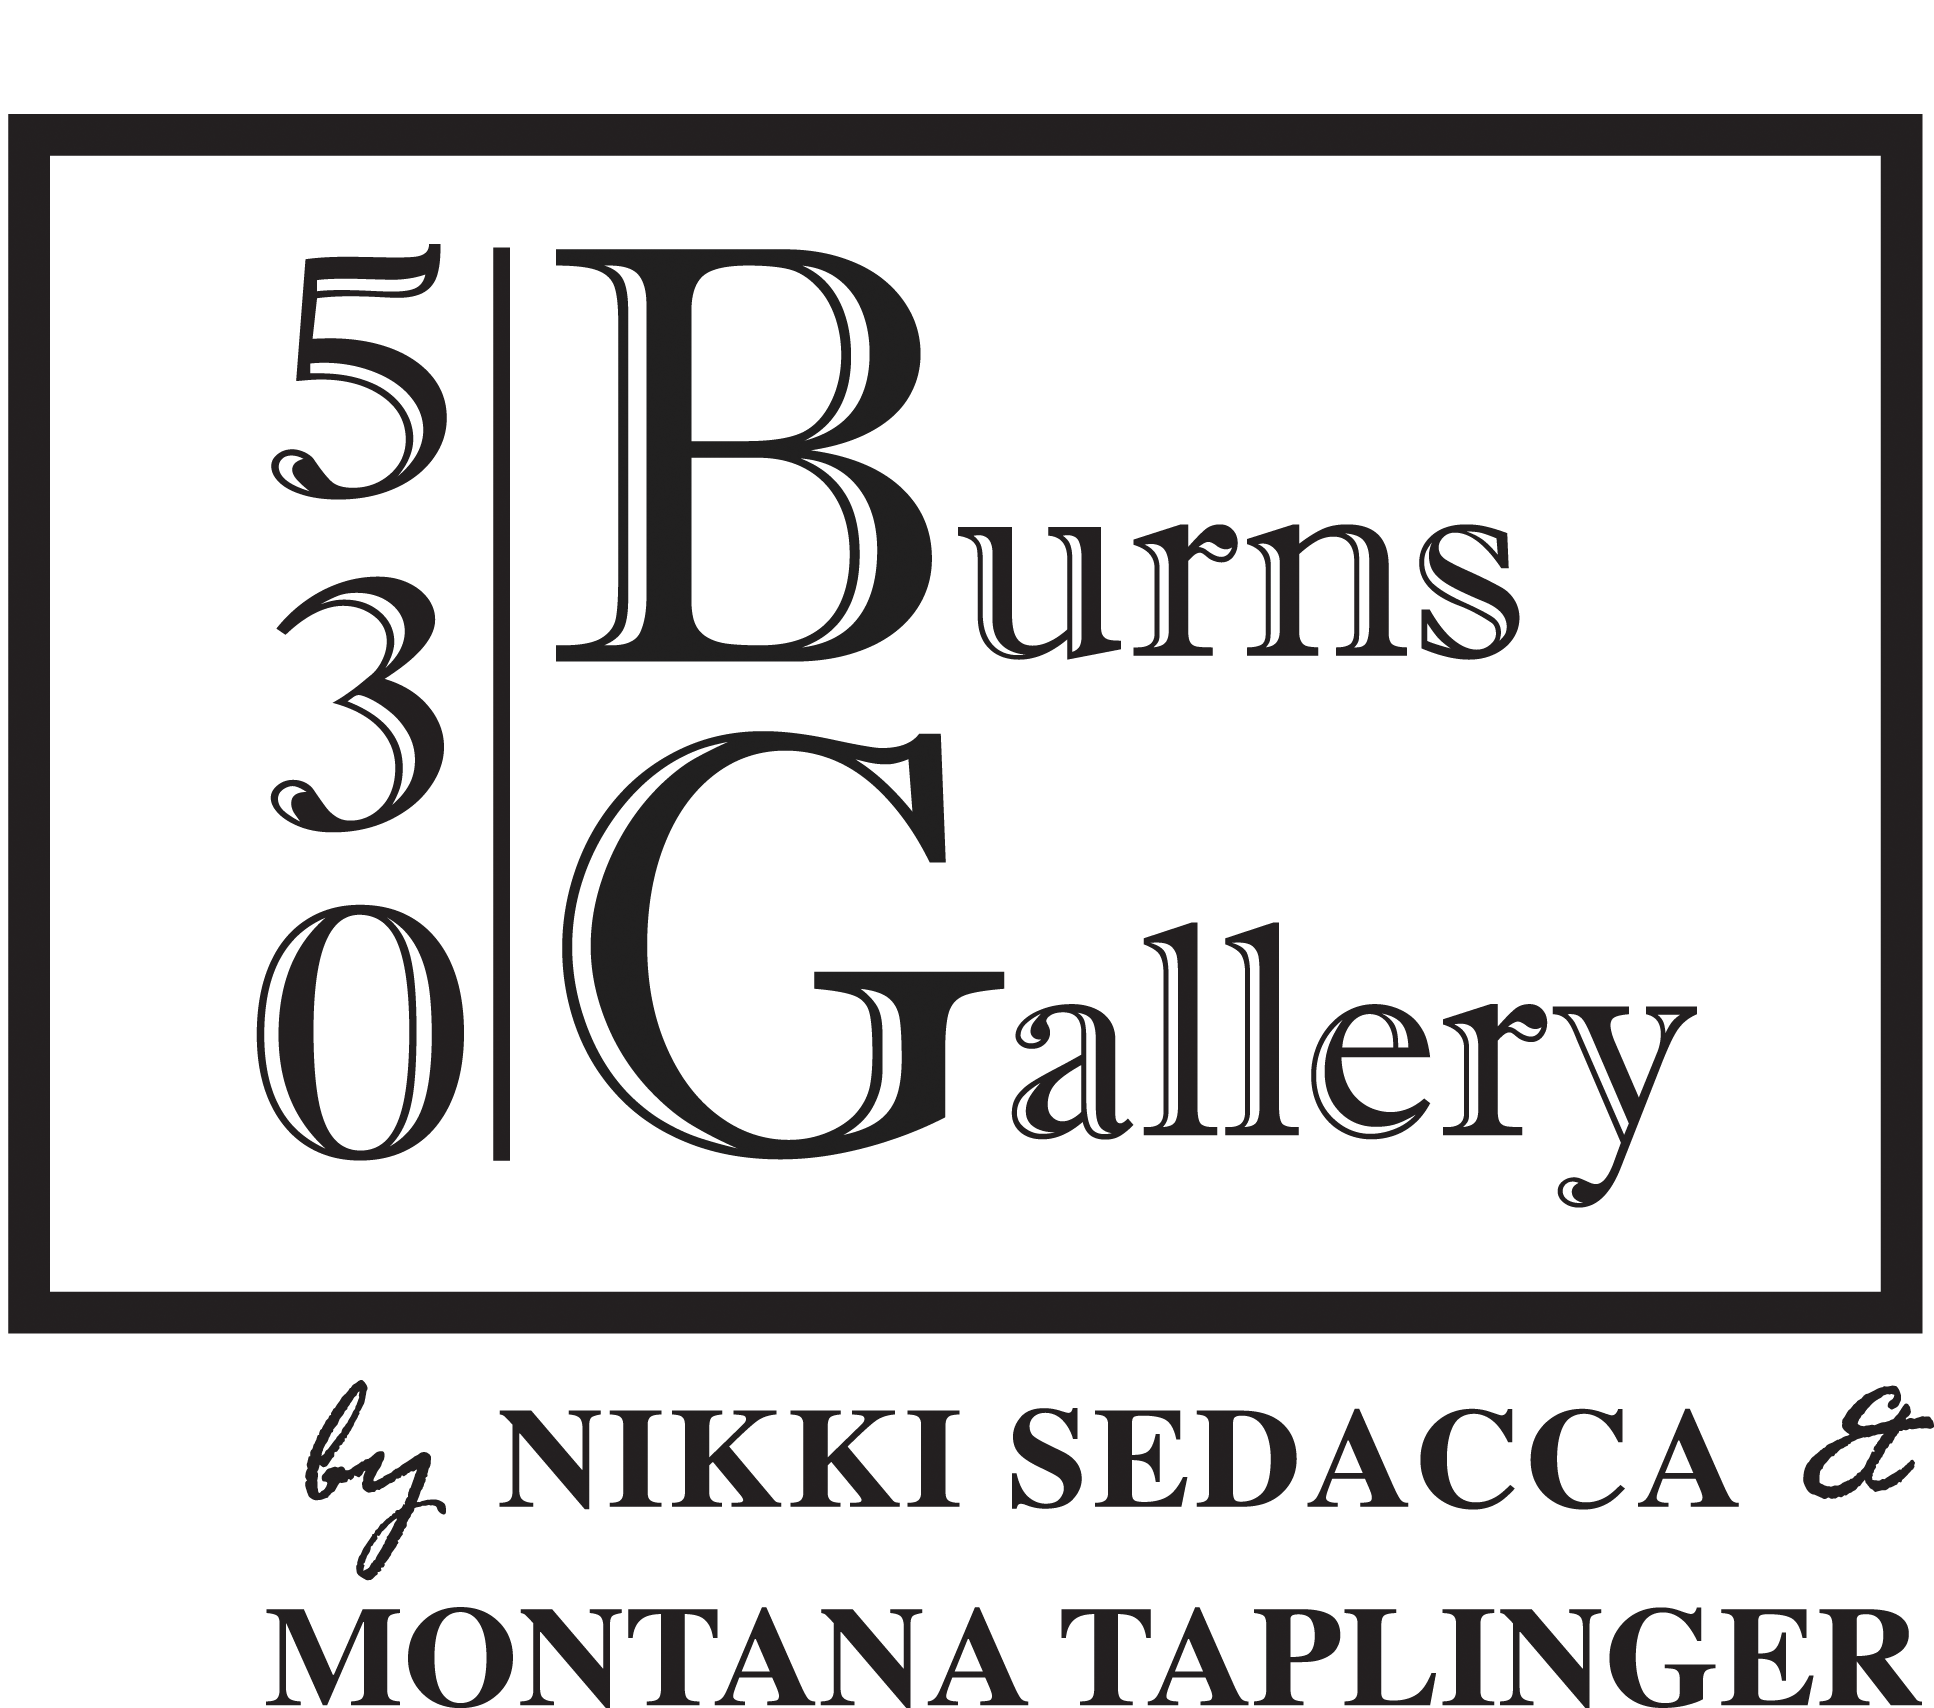 530 Burns Gallery